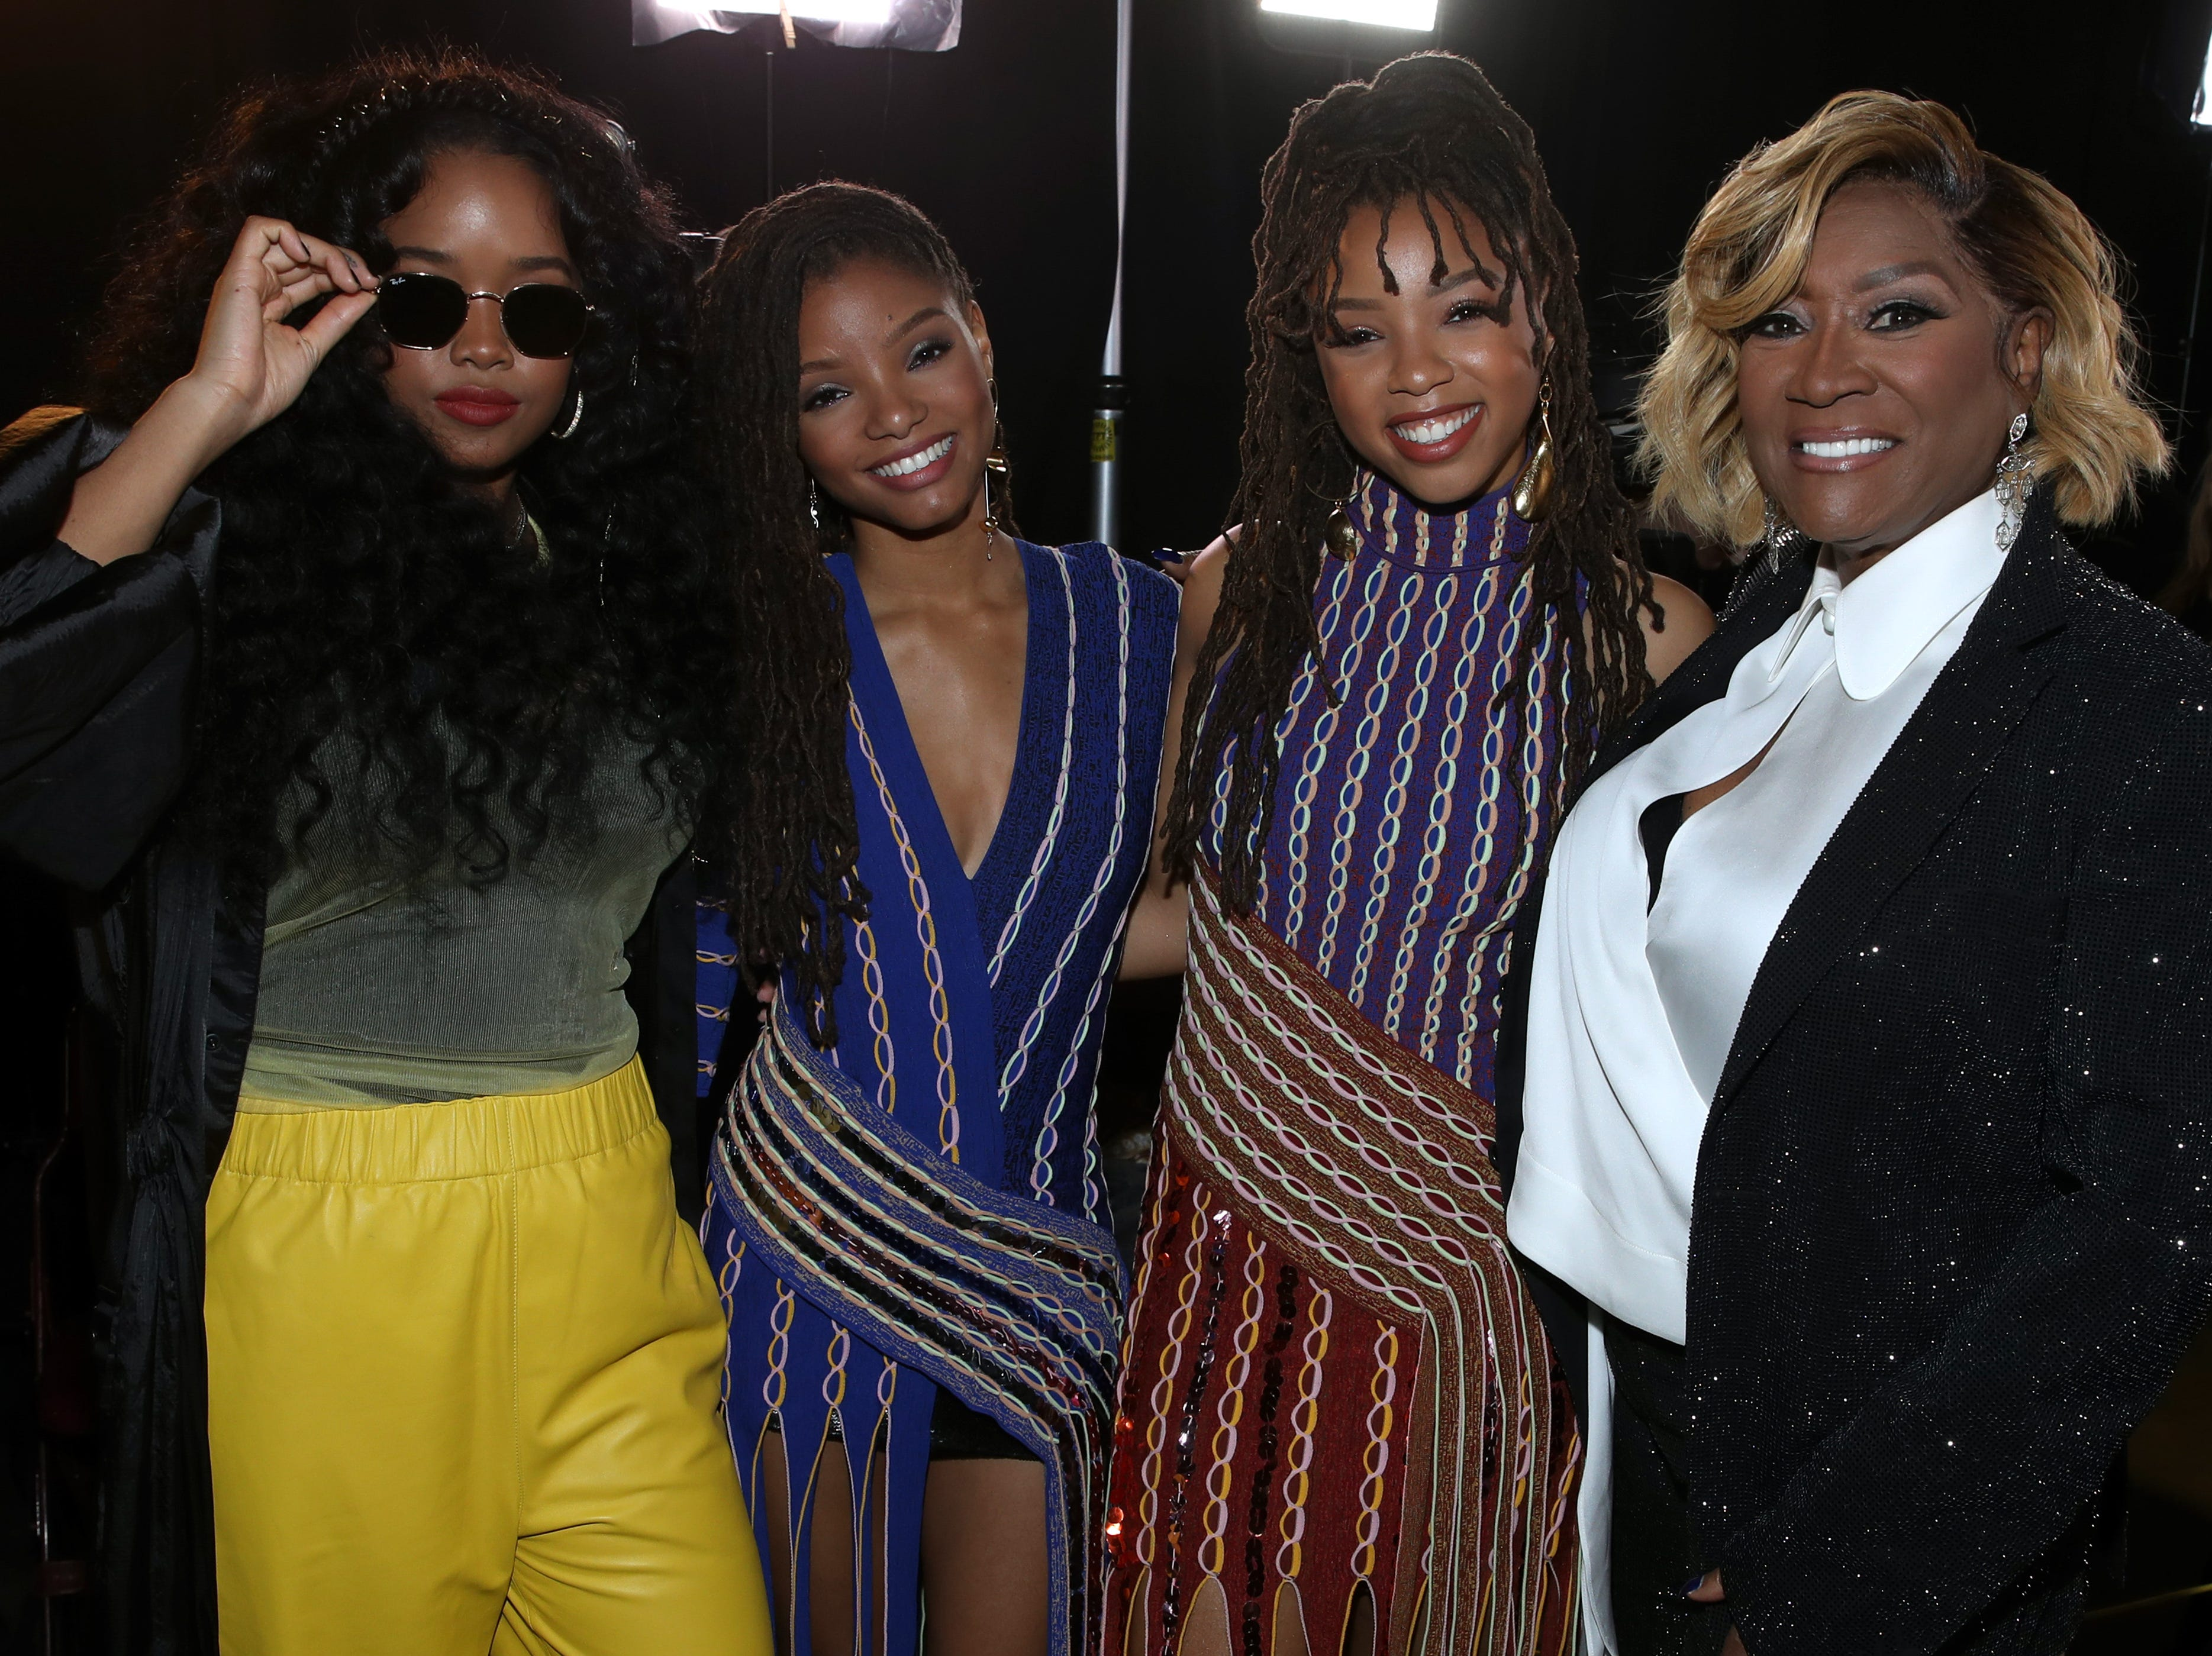 """LOS ANGELES, CA - JANUARY 13:  (L-R) H.E.R., Chloe X Halle and Patti LaBelle attend """"Aretha! A Grammy Celebration For the Queen Of Soul"""" at the Shrine Auditorium on Jan. 13, 2019, in Los Angeles, Calif."""